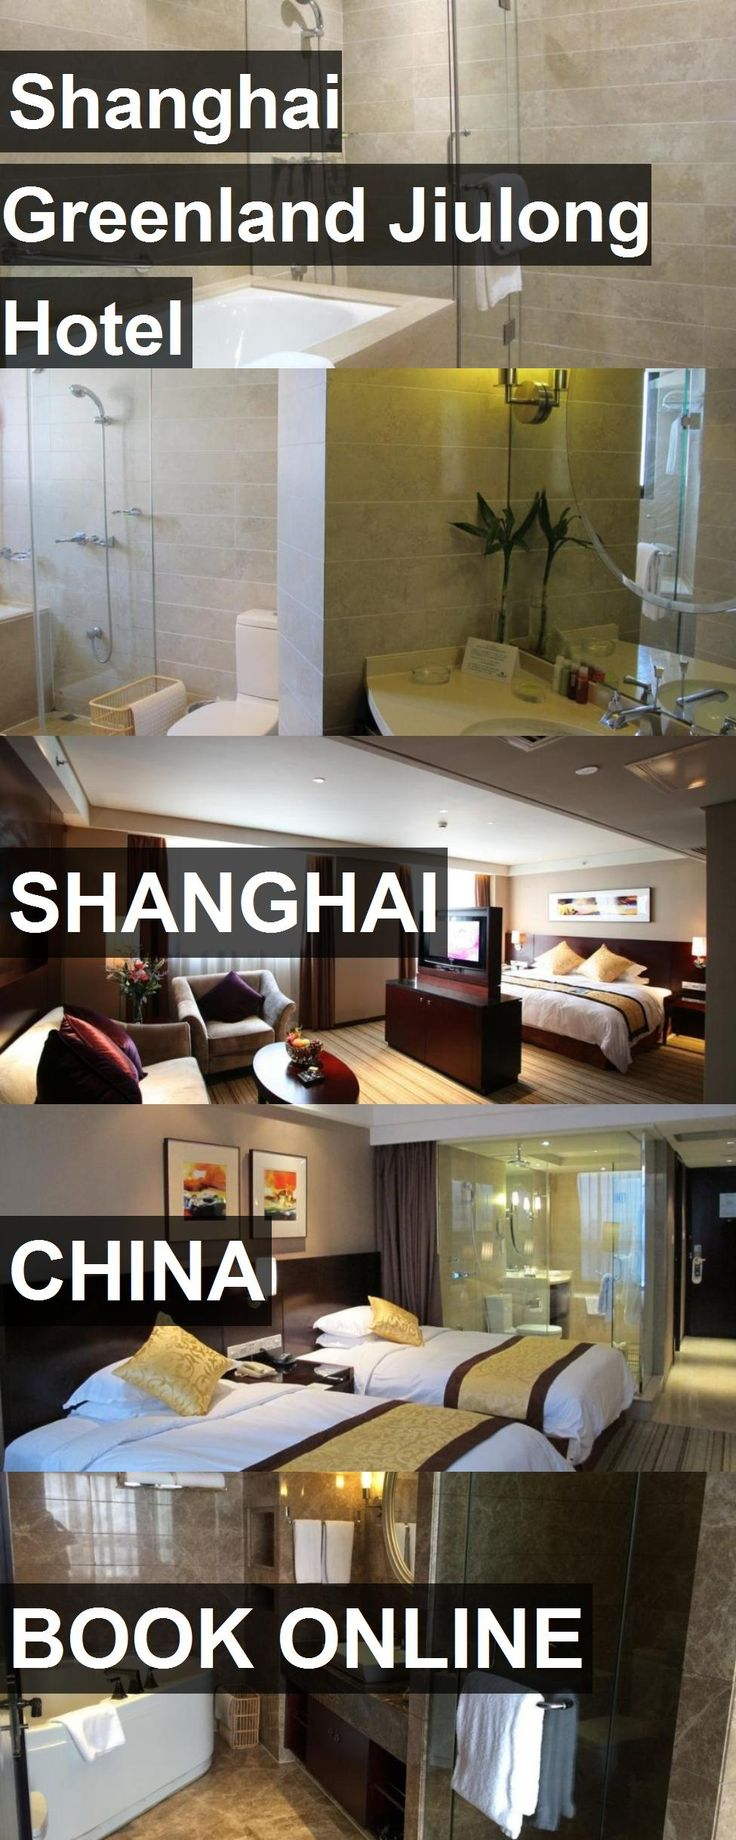 Shanghai Greenland Jiulong Hotel in Shanghai, China. For more information, photos, reviews and best prices please follow the link. #China #Shanghai #travel #vacation #hotel